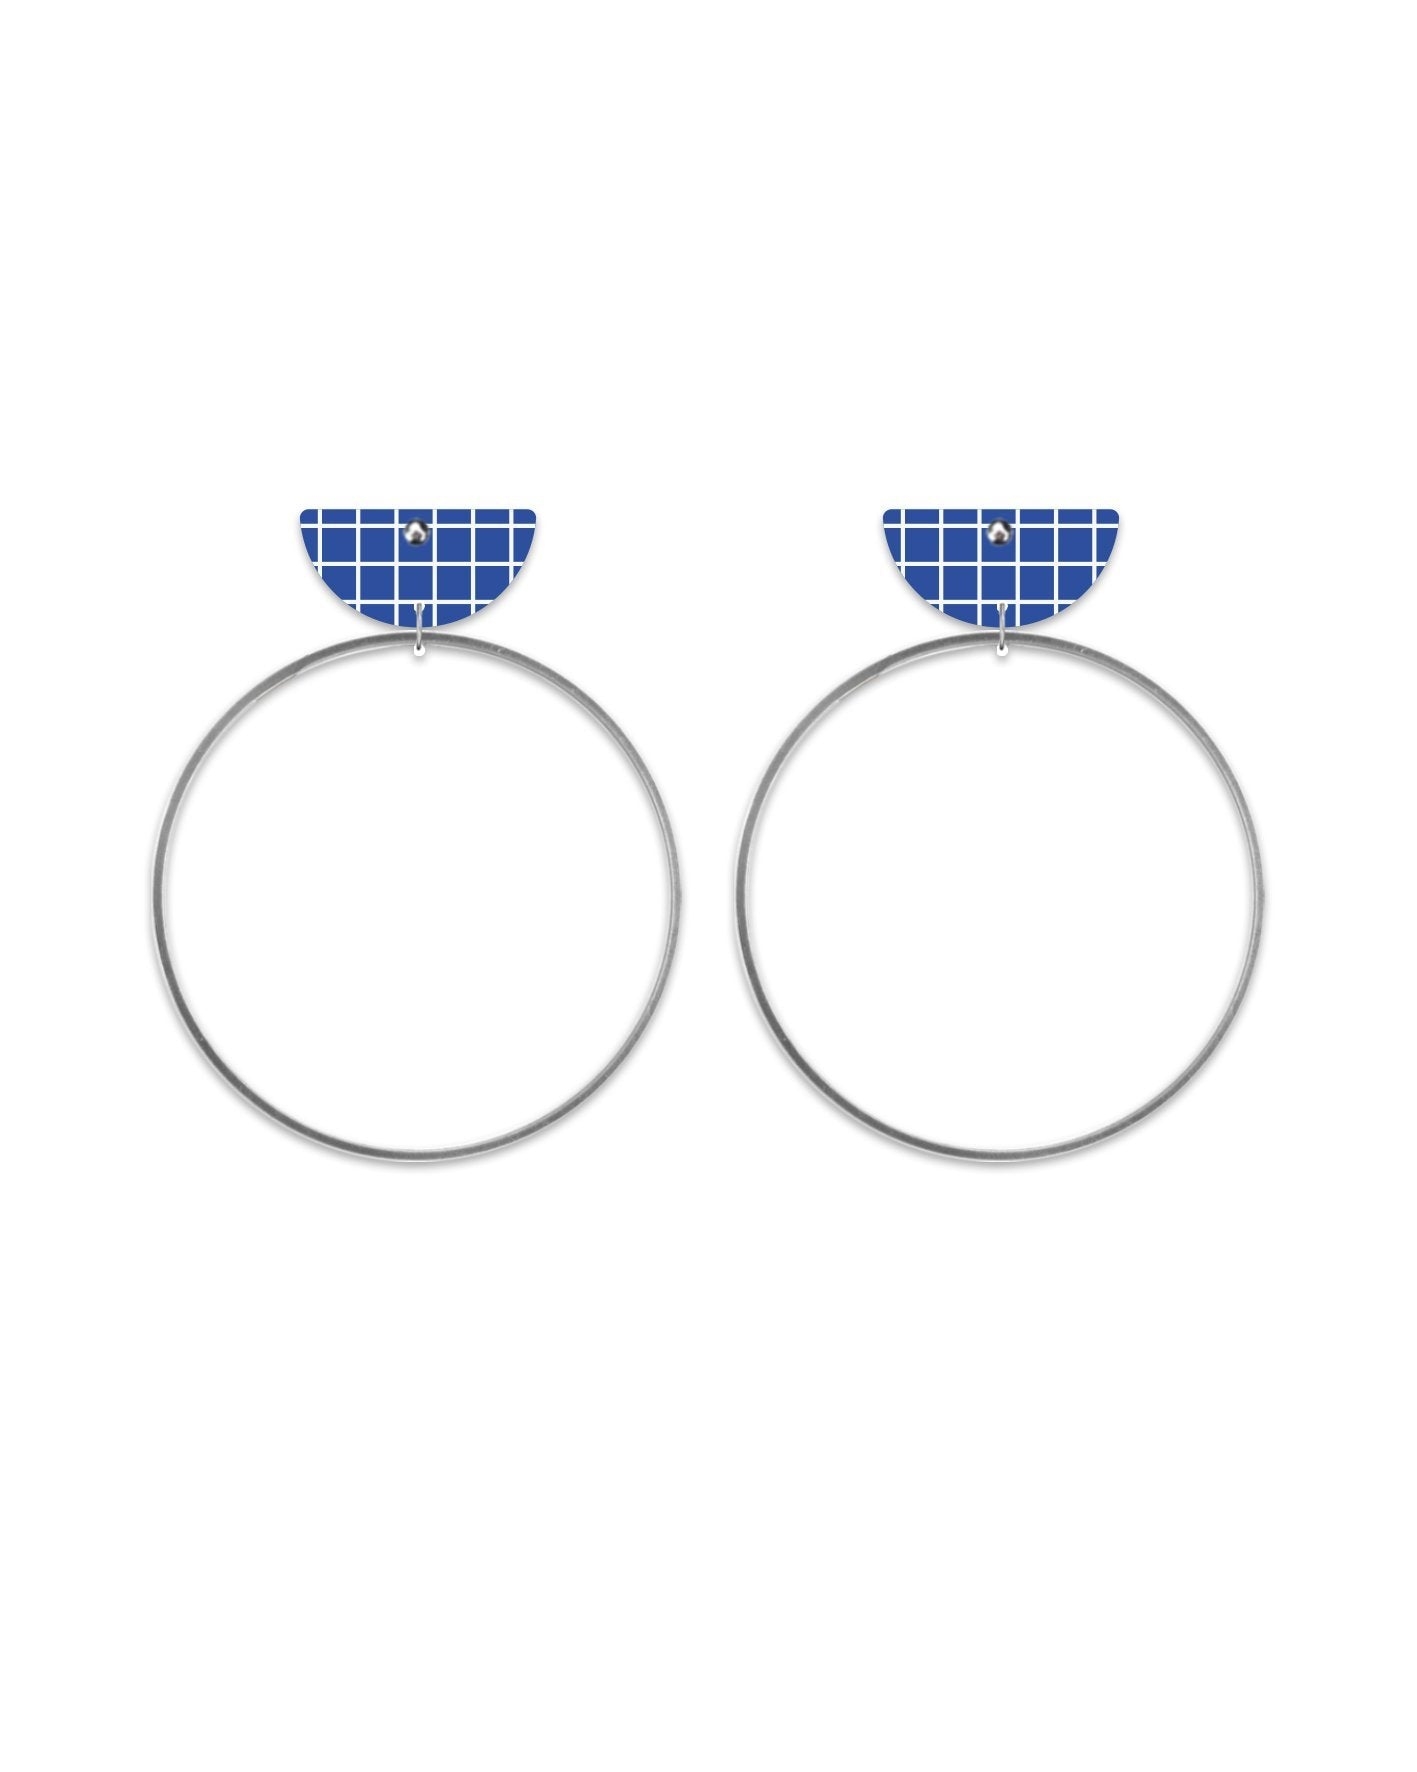 Cool Tones Grid Moon Ring Stud Earrings